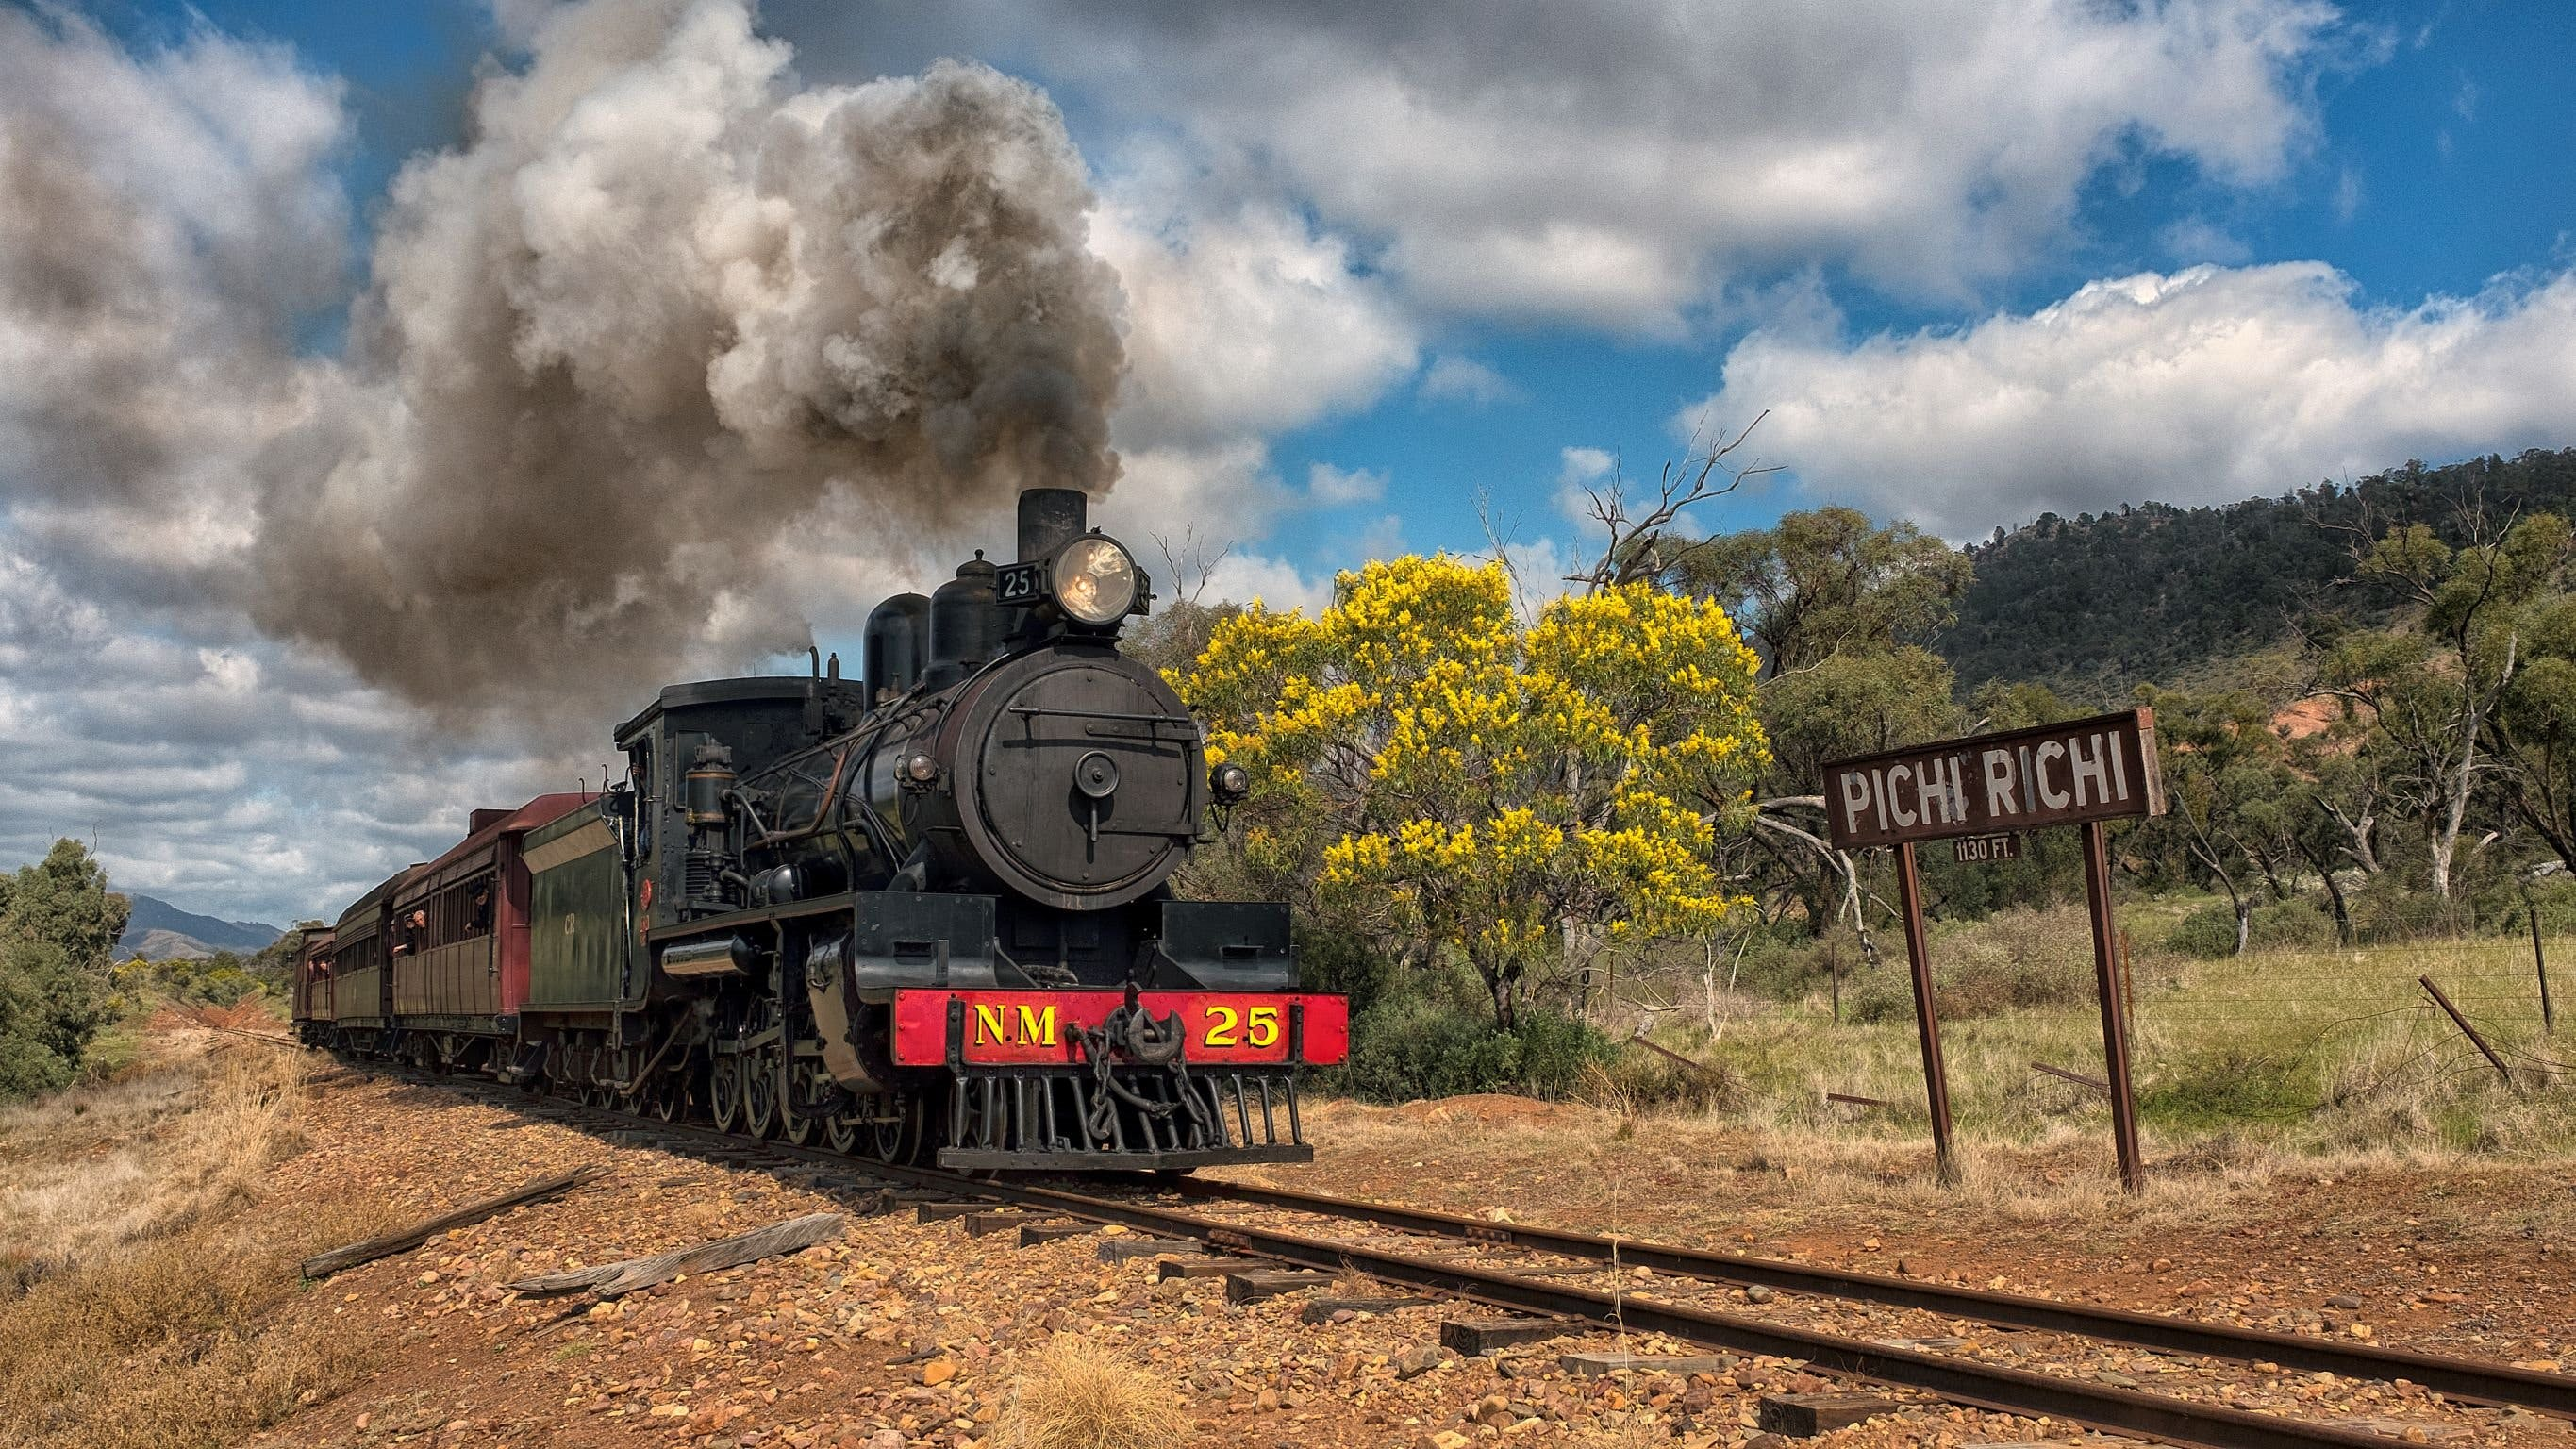 Pichi Richi Railway - Accommodation Yamba